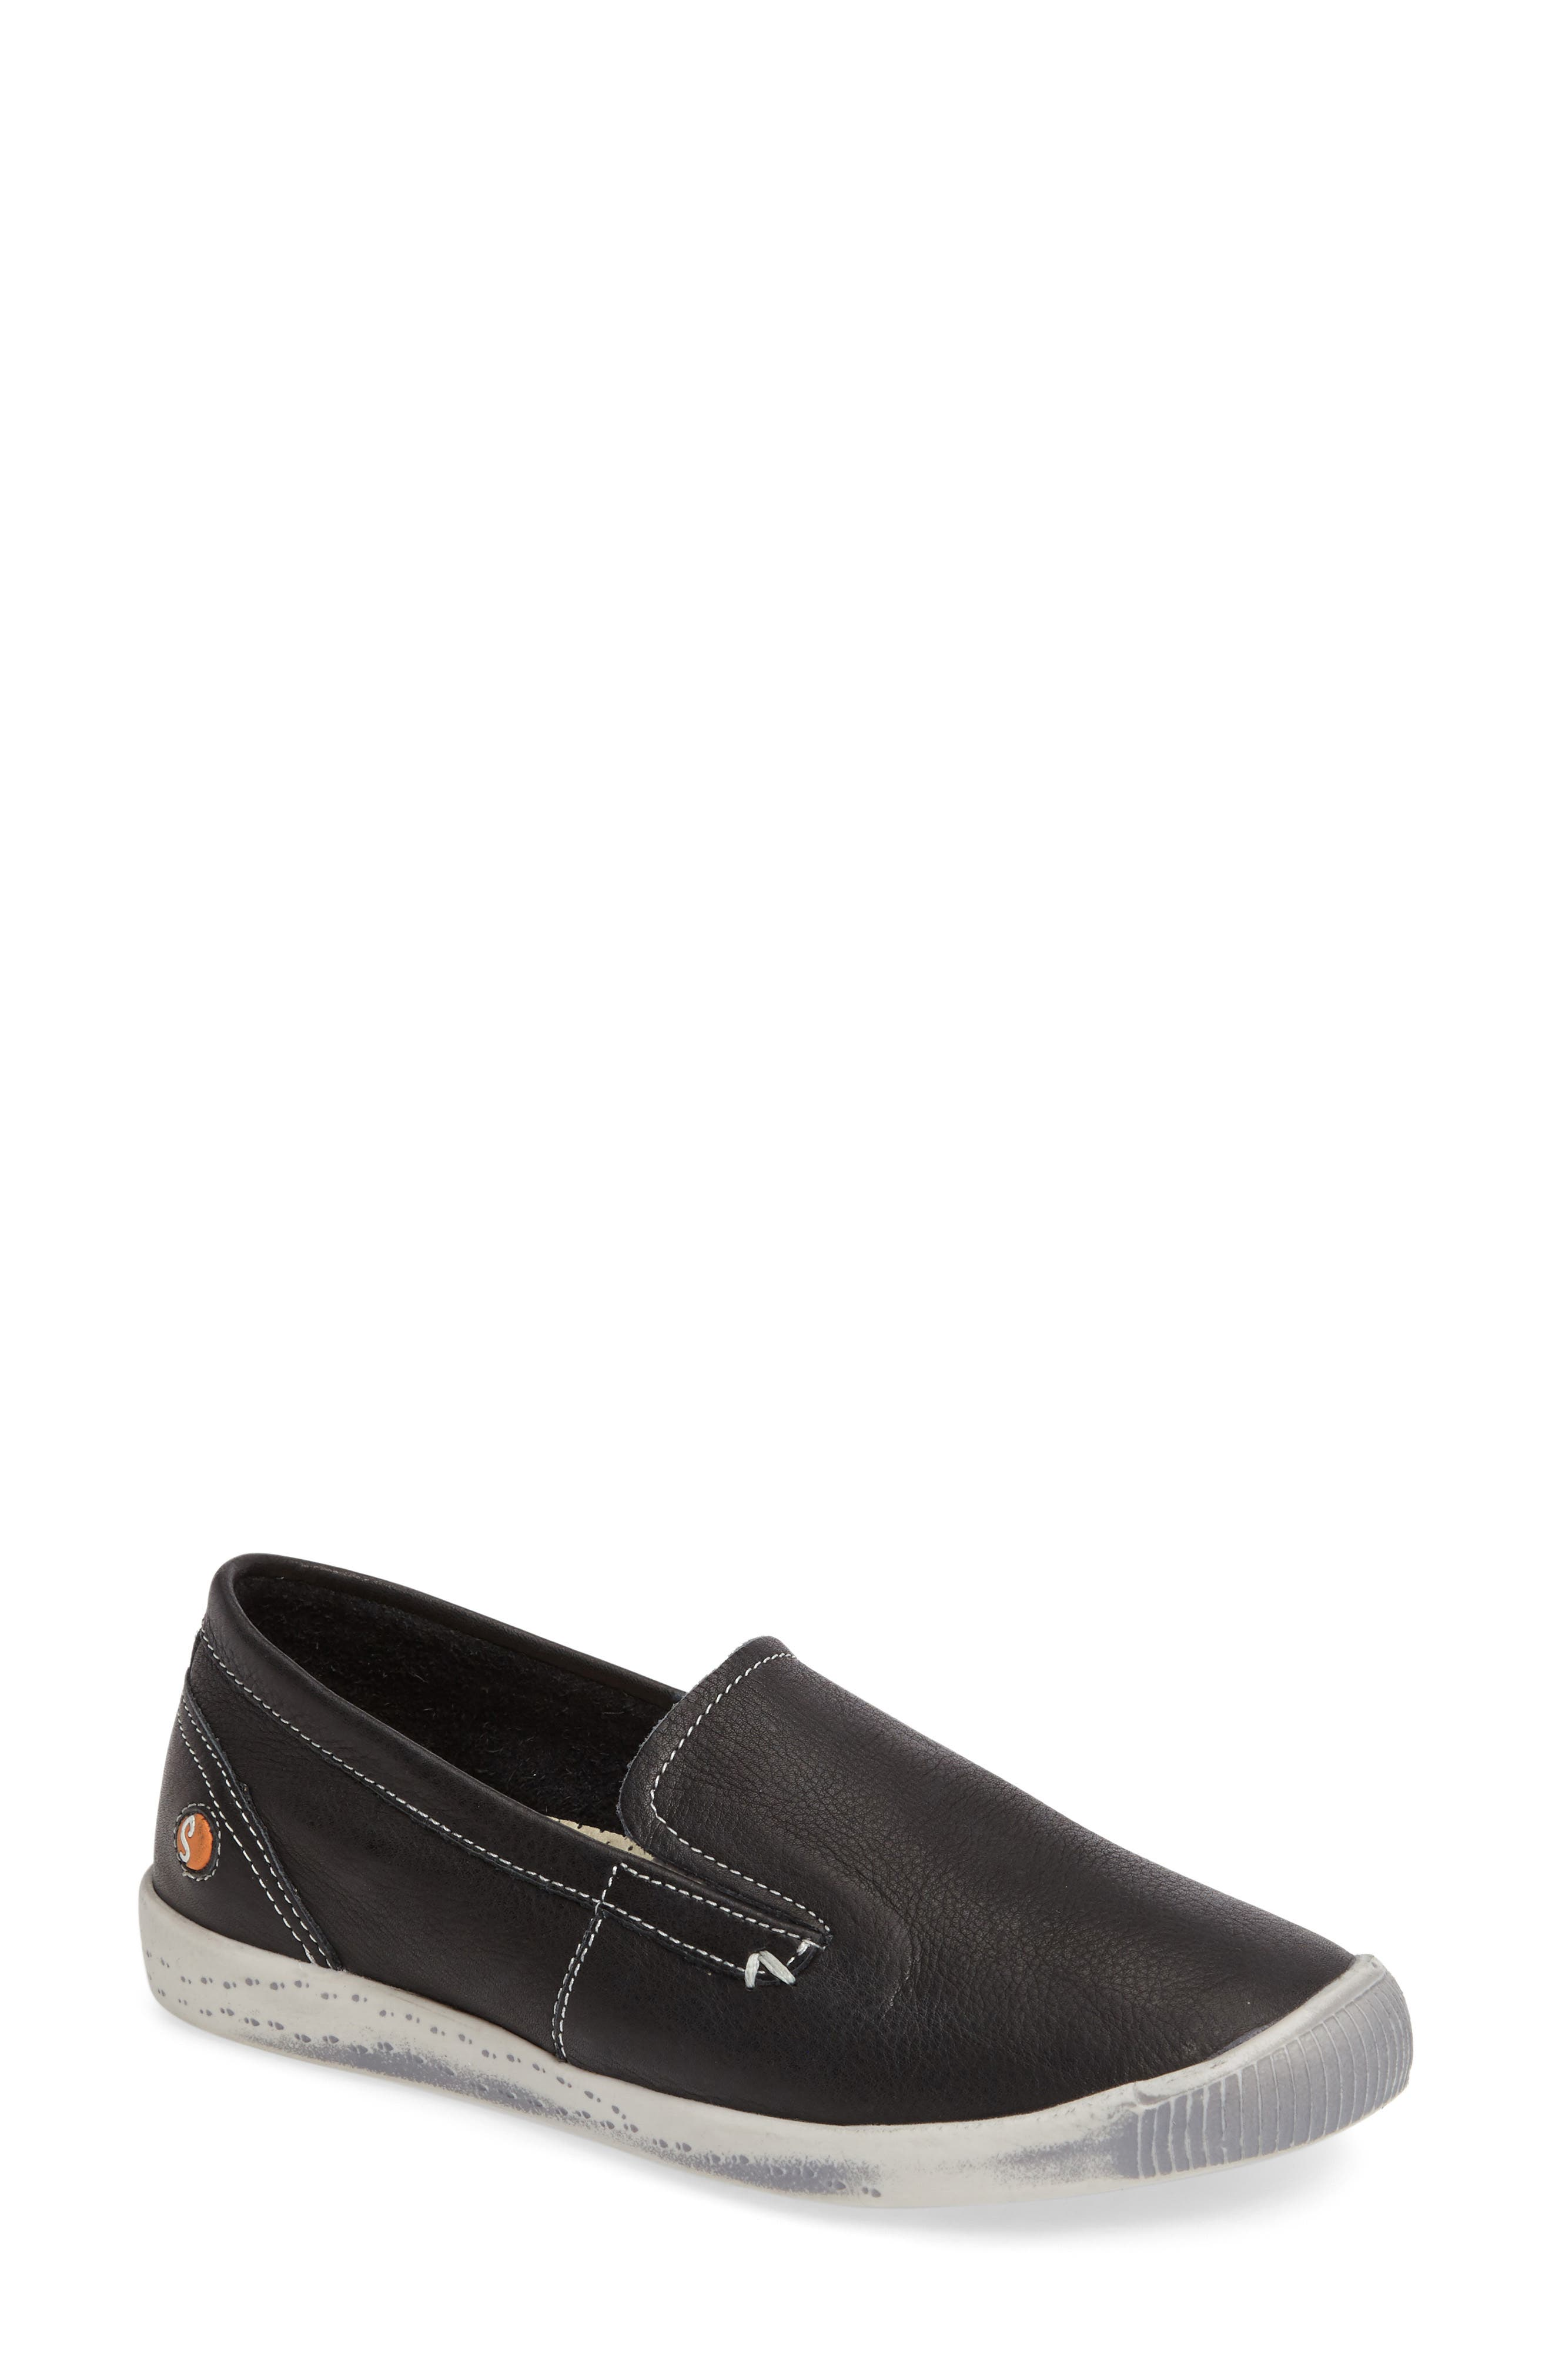 SOFTINOS BY FLY LONDON Fly London Ita Slip-On Sneaker